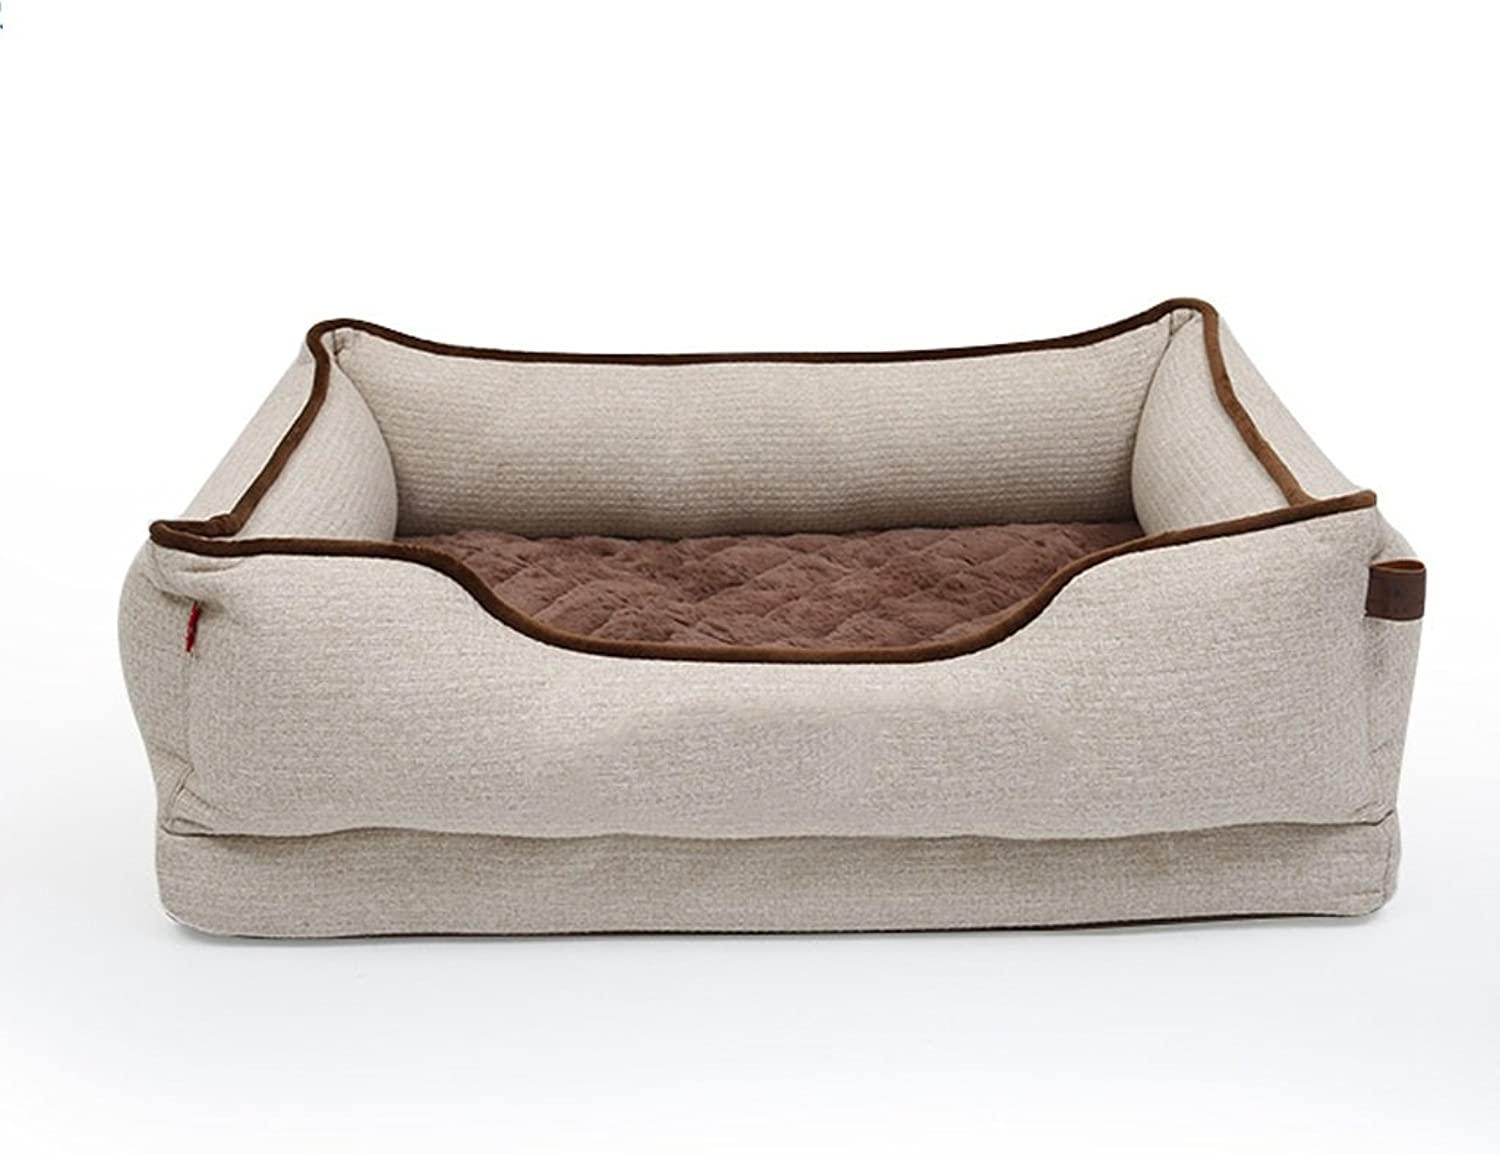 Cheng Pet bed Removable and washable rectangular mattress Four seasons universal breathable comfortable dog bed L (beige 90 x 68x23 cm)